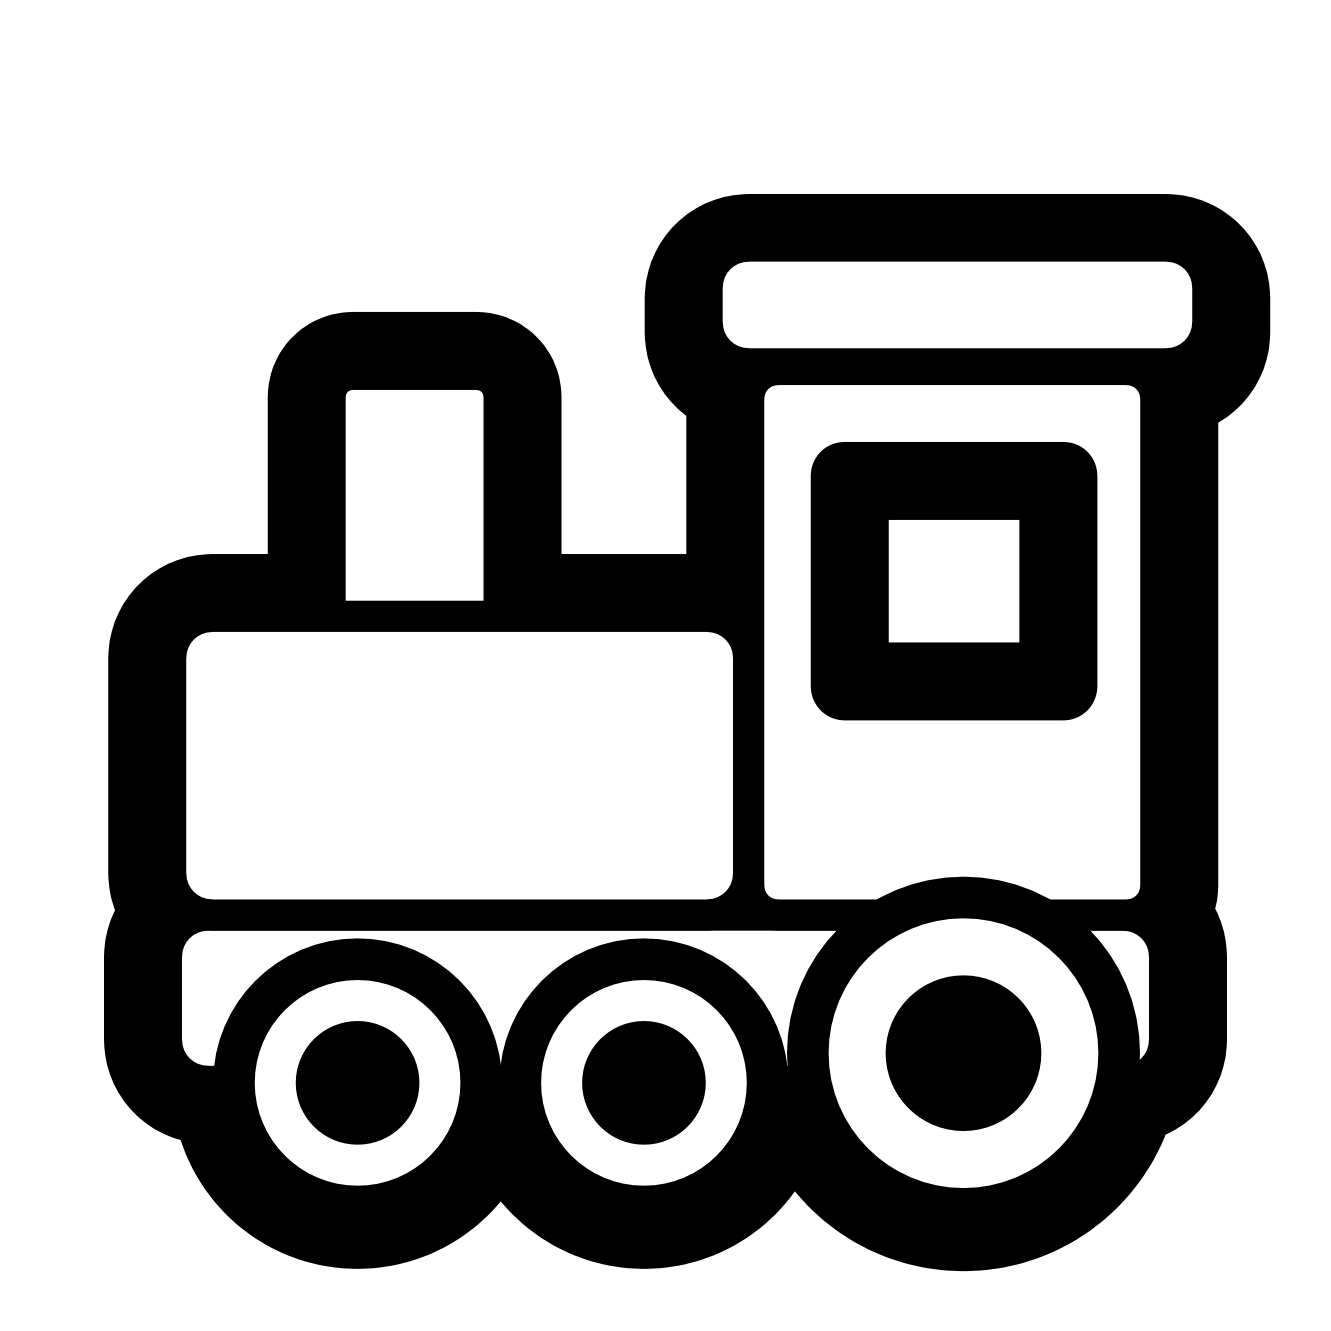 1331x1331 Train Clipart Black And White Free Images